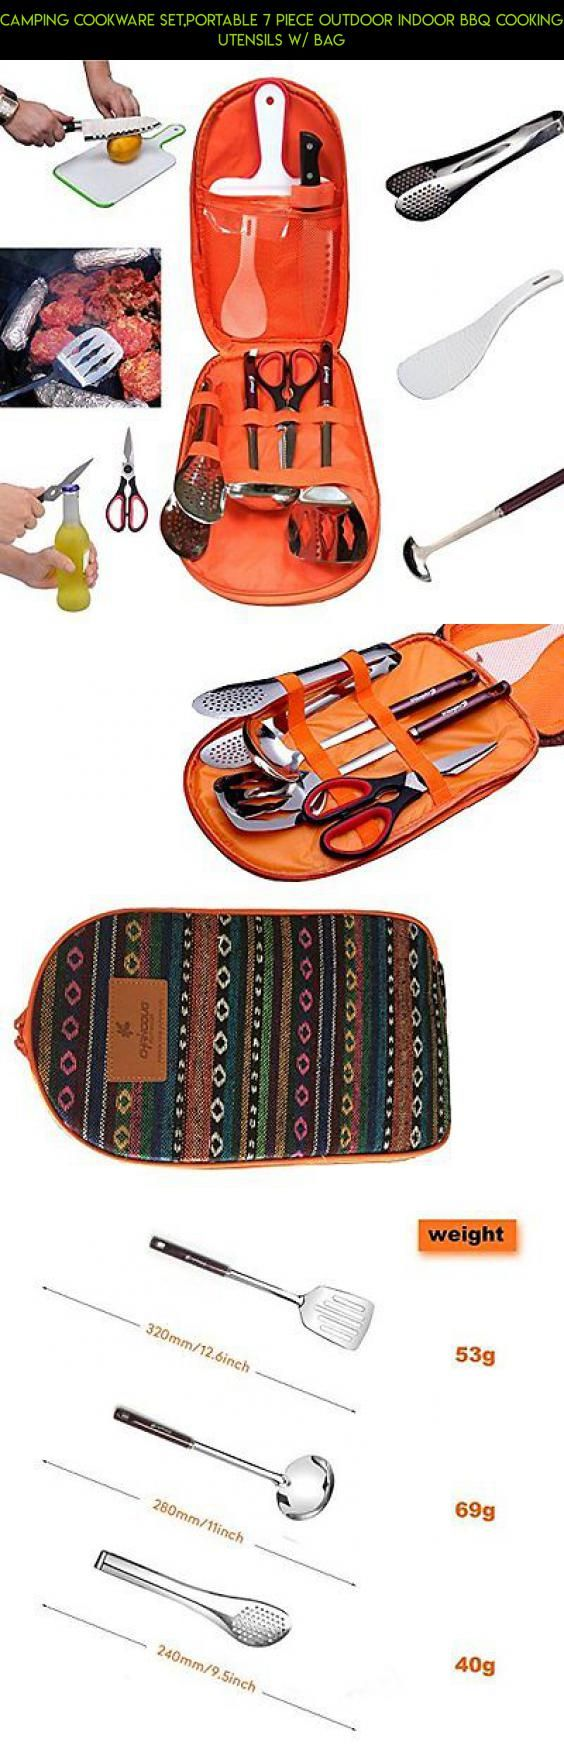 Camping Cookware Set,Portable 7 Piece Outdoor Indoor BBQ Cooking Utensils w/ Bag #set #parts #outdoor #tech #camera #shopping #kit #racing #drone #plans #fpv #products #technology #gadgets #utensil #cooking